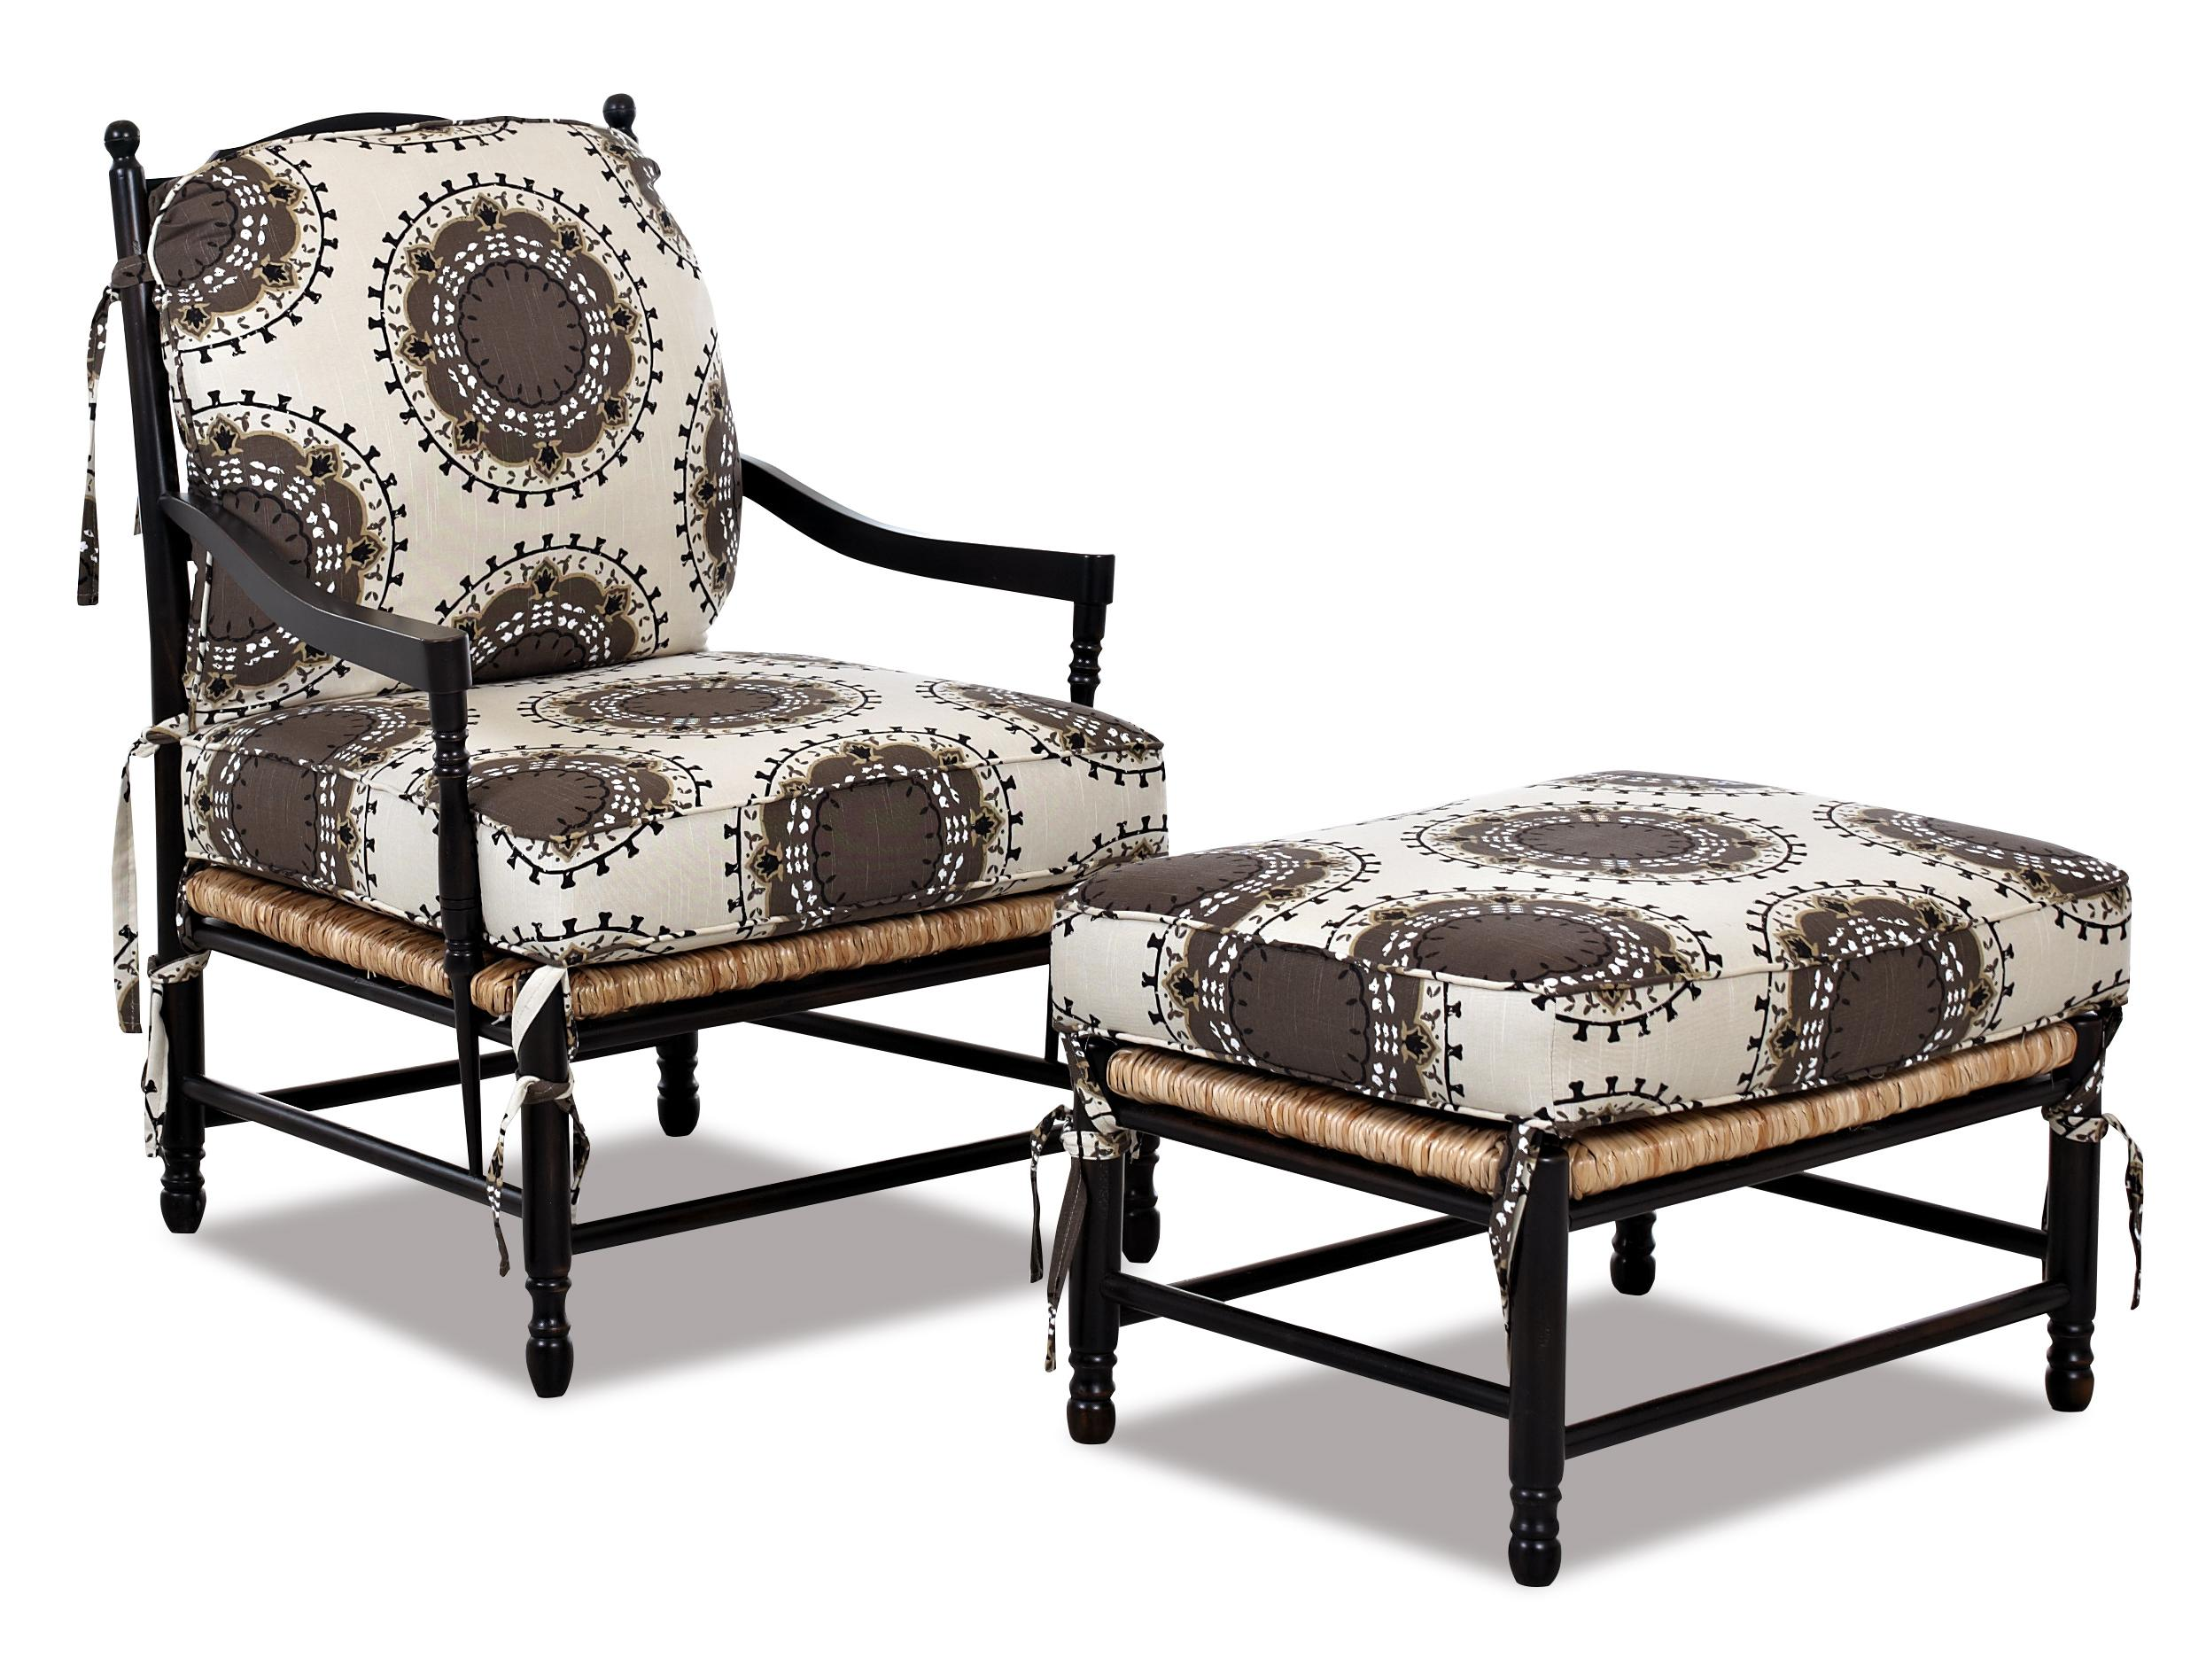 Verano Occasional Chair and Ottoman Set